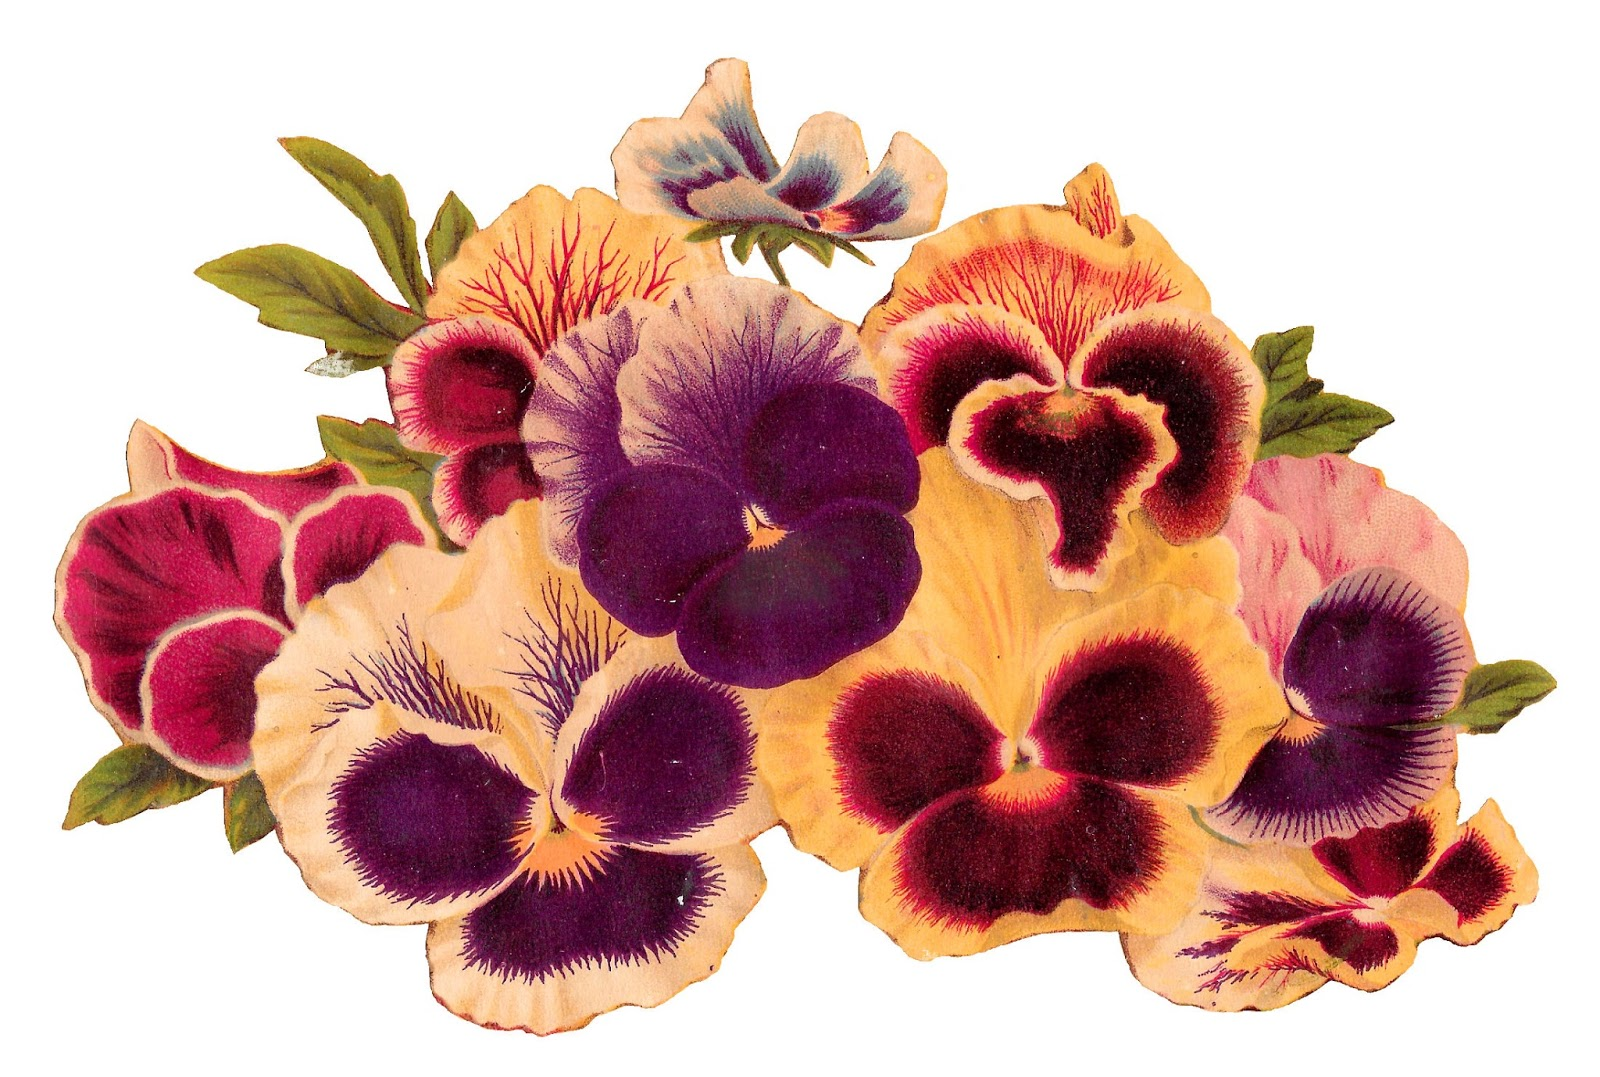 Flowers pansy botanical artwork image clipart illustration transfer